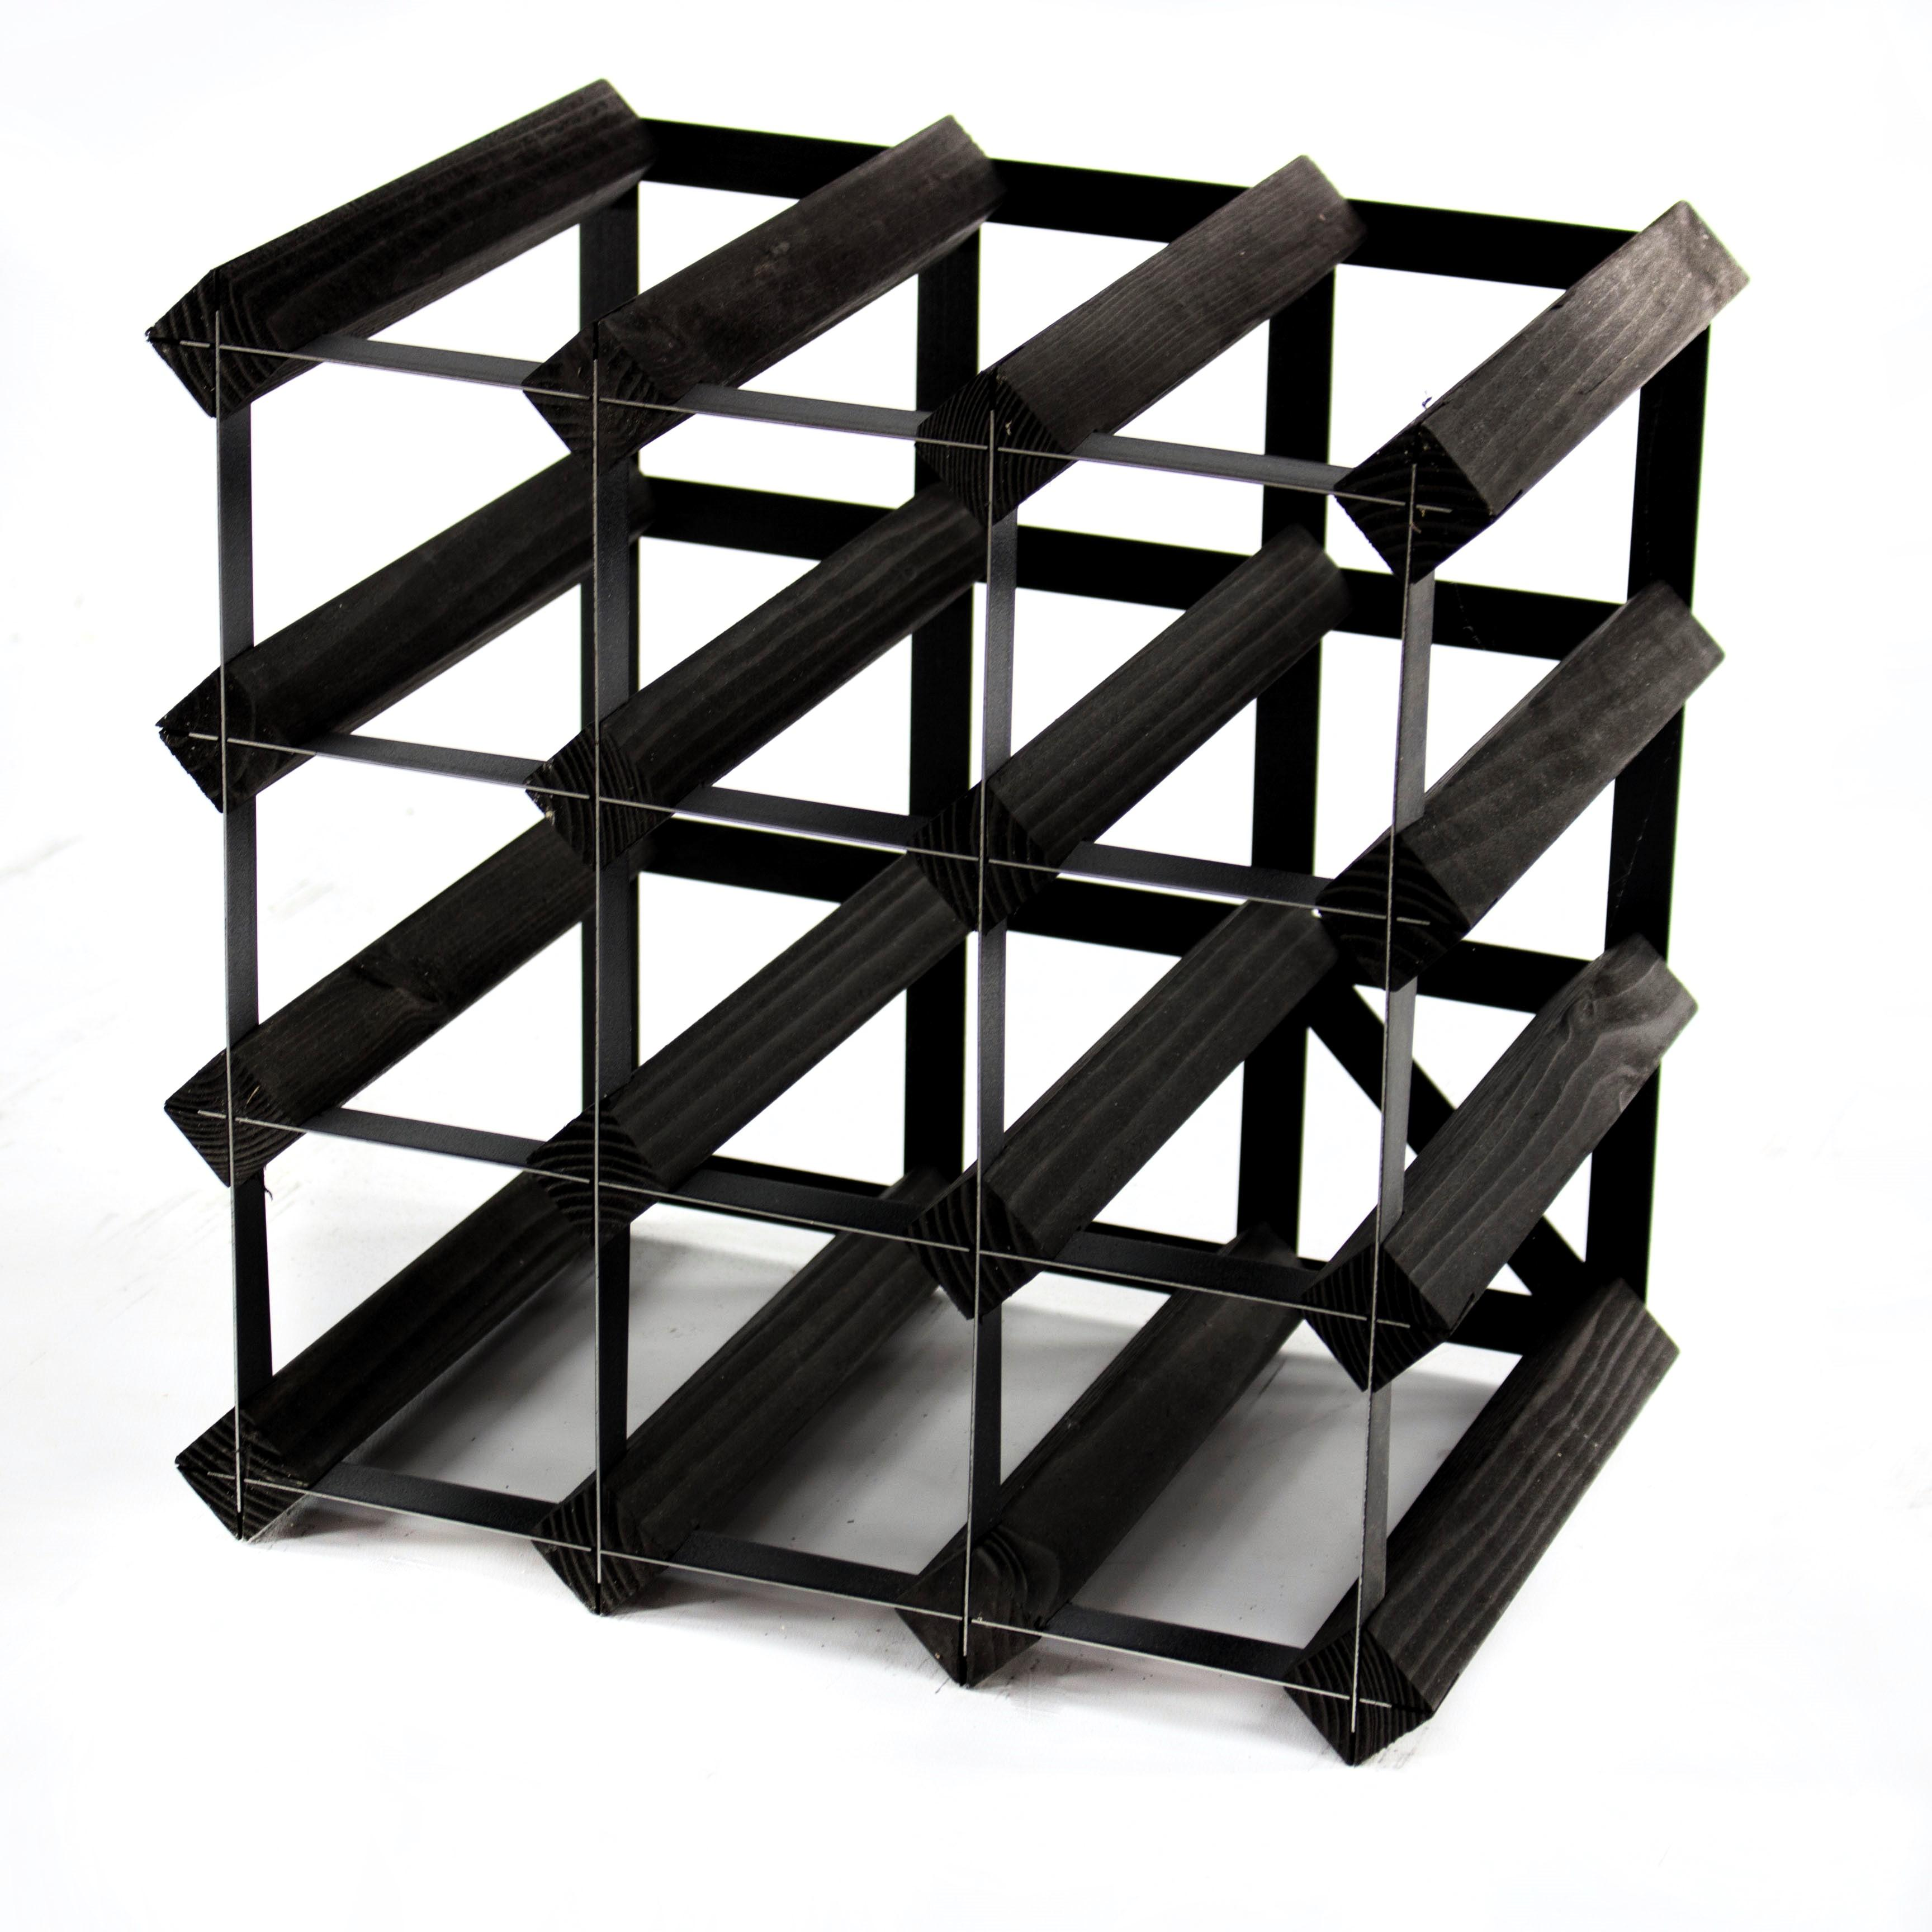 Metal Wine Racks Classic 12 Bottle Black Stained Wood And Black Metal Wine Rack Ready Assembled